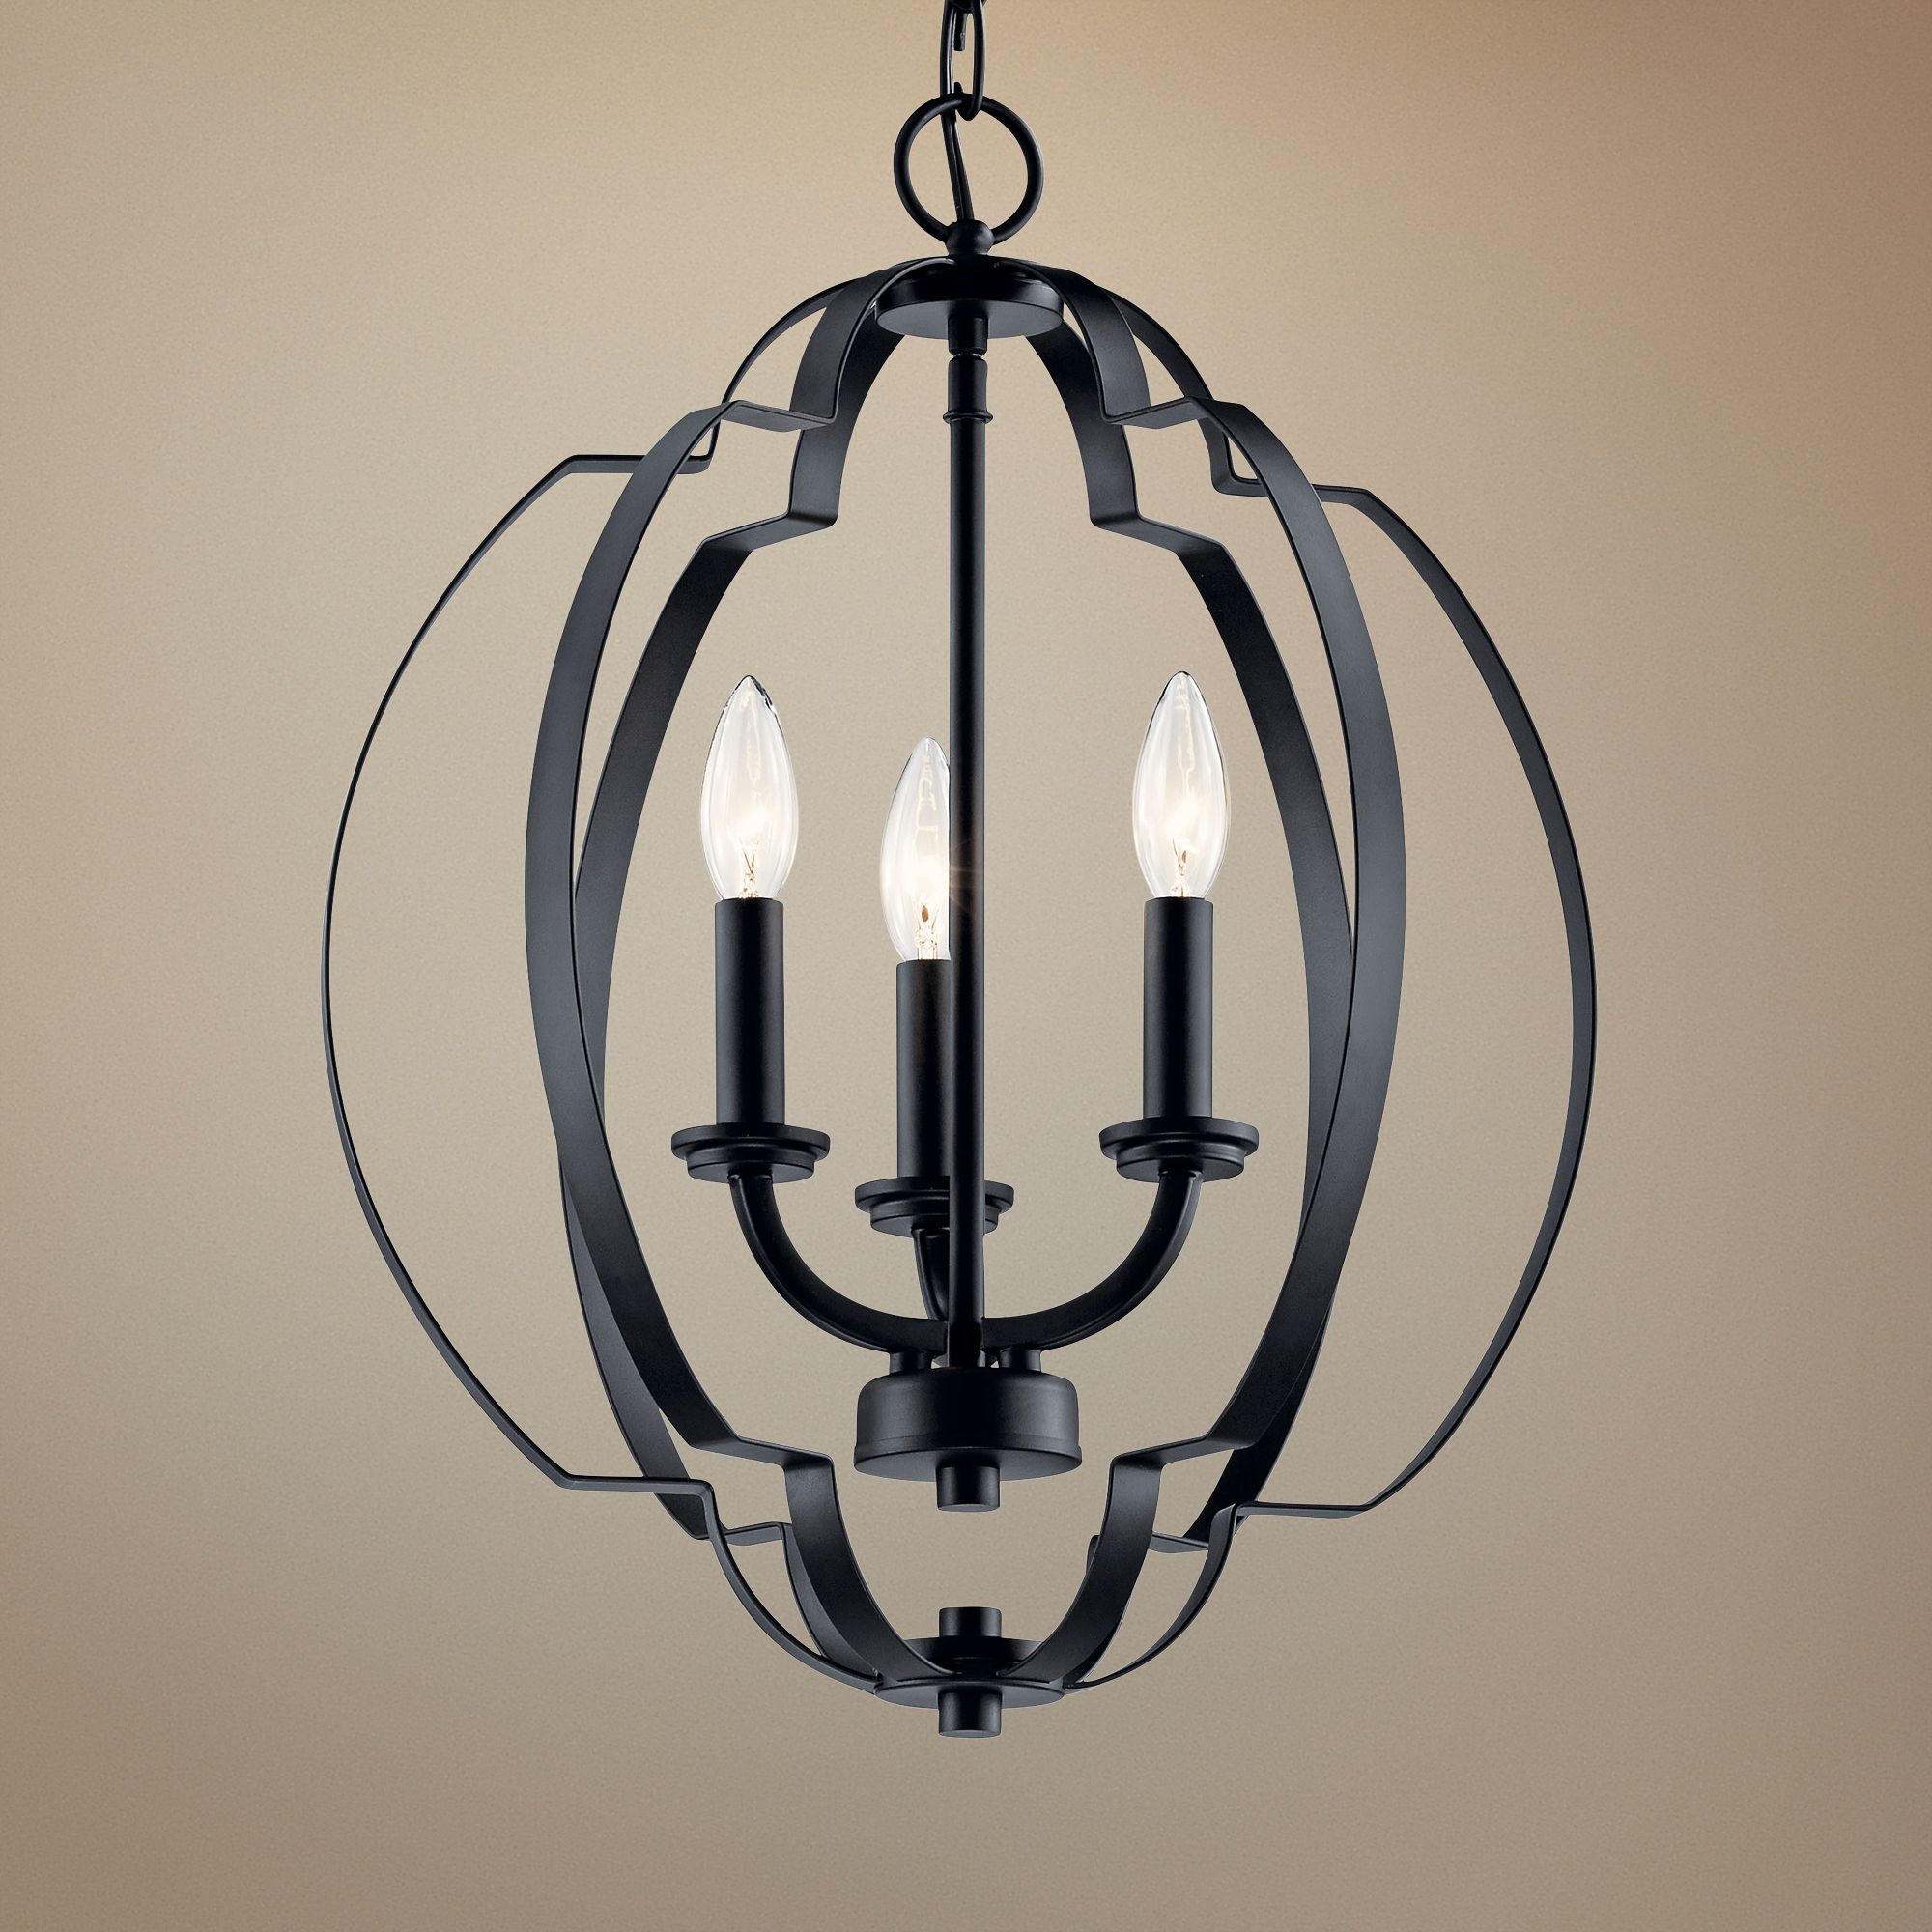 Black Lantern Pendant Lighting Fixtures Lamps Plus